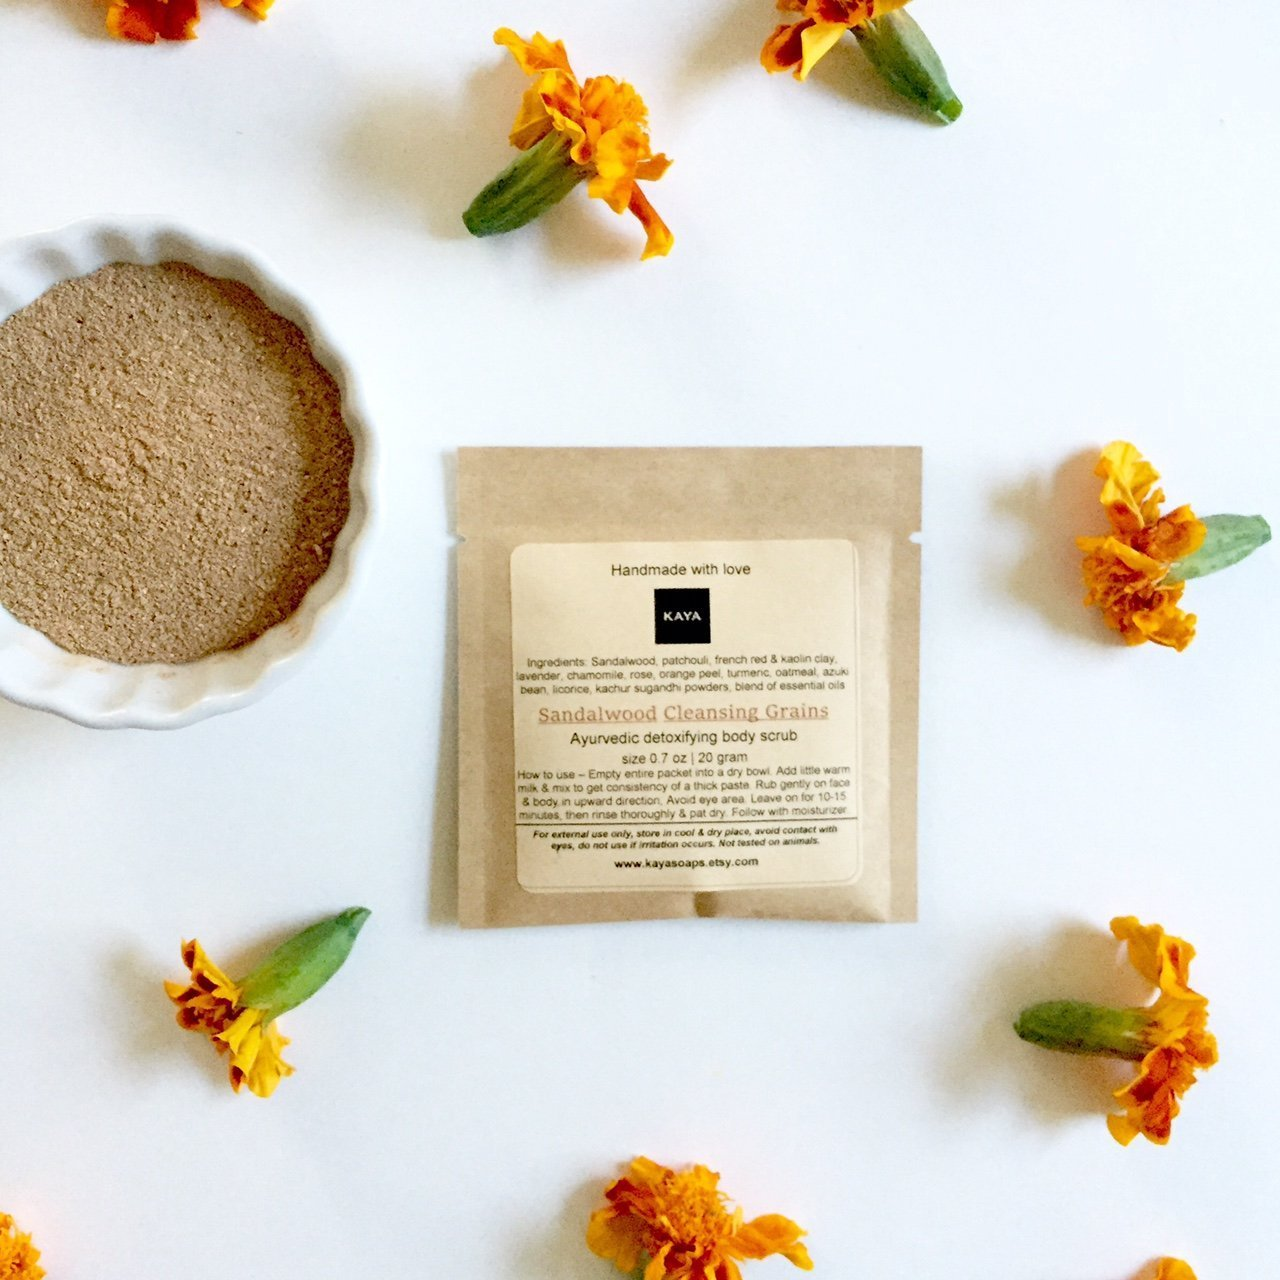 Ayurvedic Cleansing Grains | 100% Natural | herbal | face body scrub | Sugandhi Utane | Ubtan Natural Scrub | Diwali Utane | Ubtan Powder